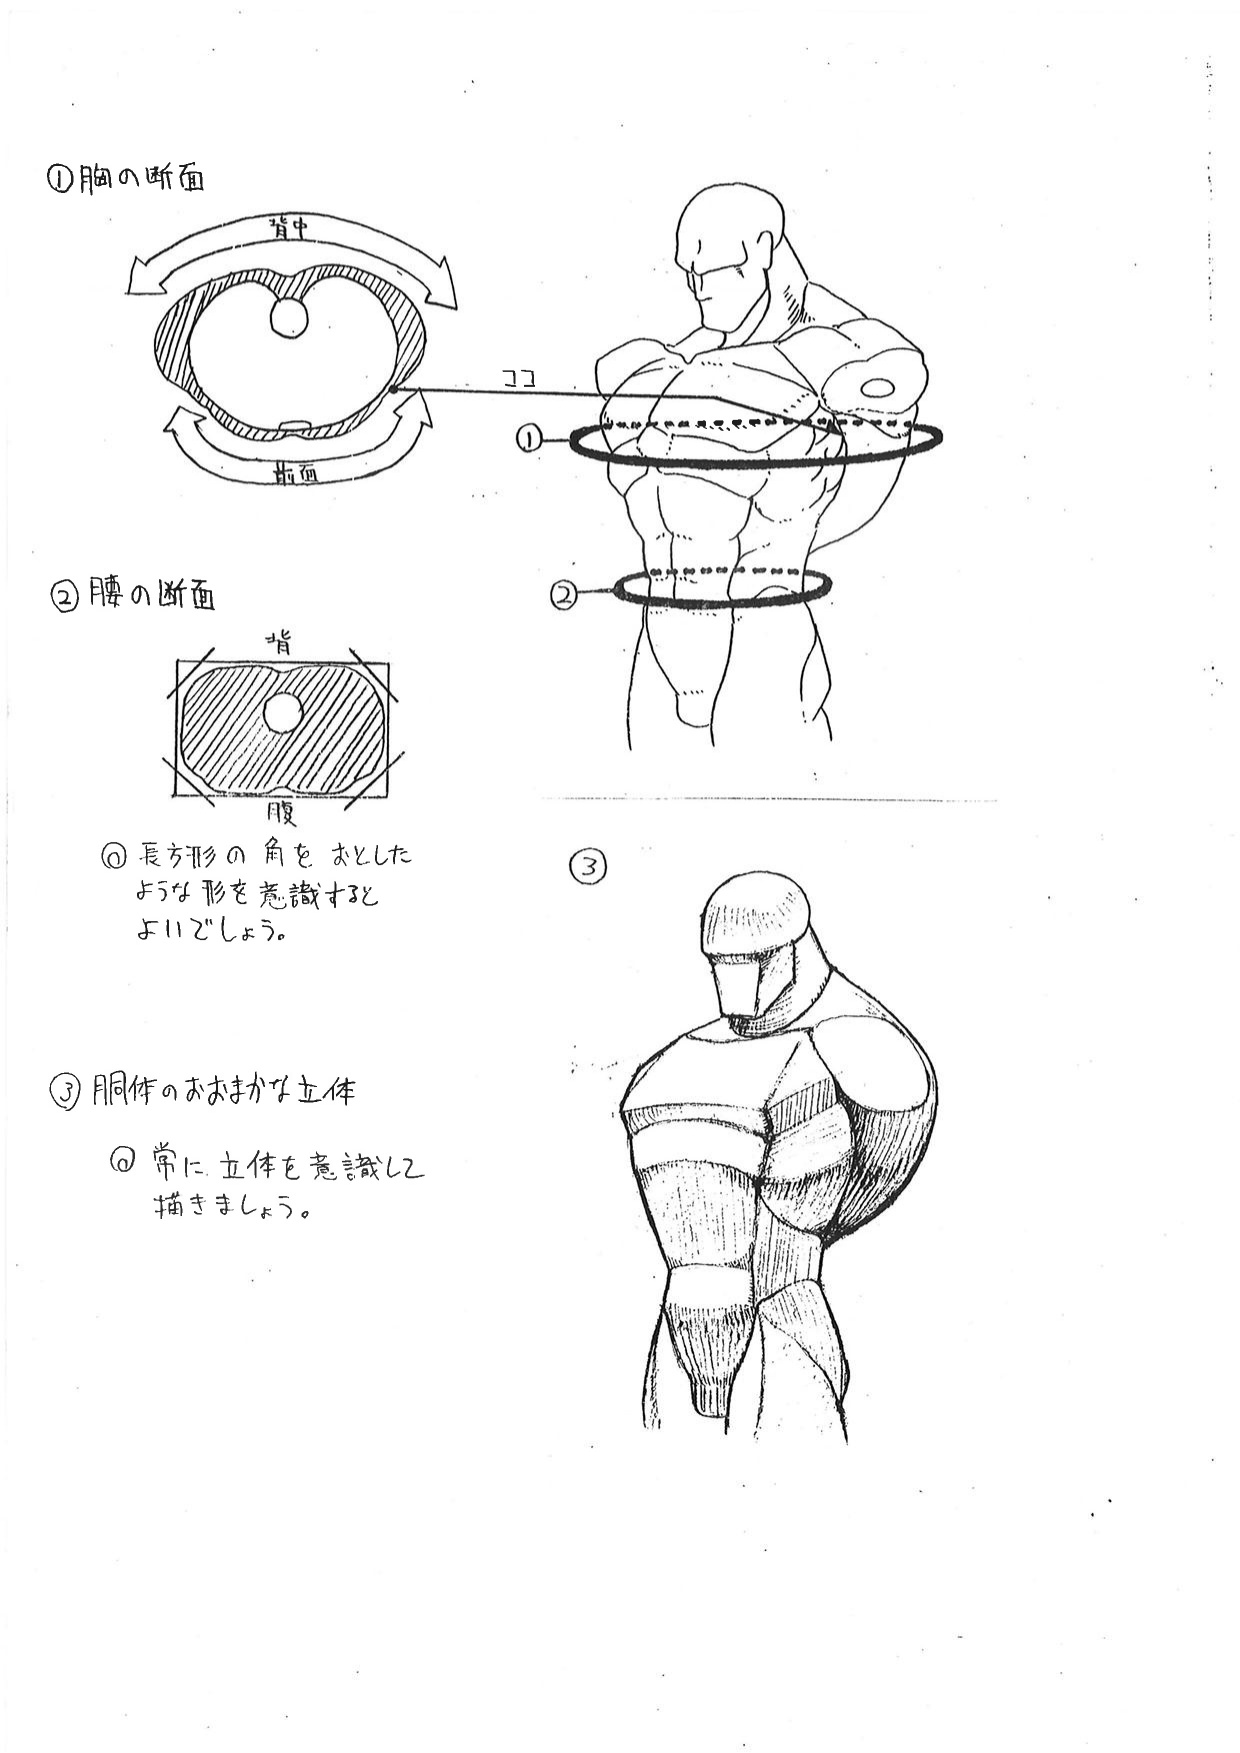 Capcom Releases anatomy Guide Used by Street Fighter